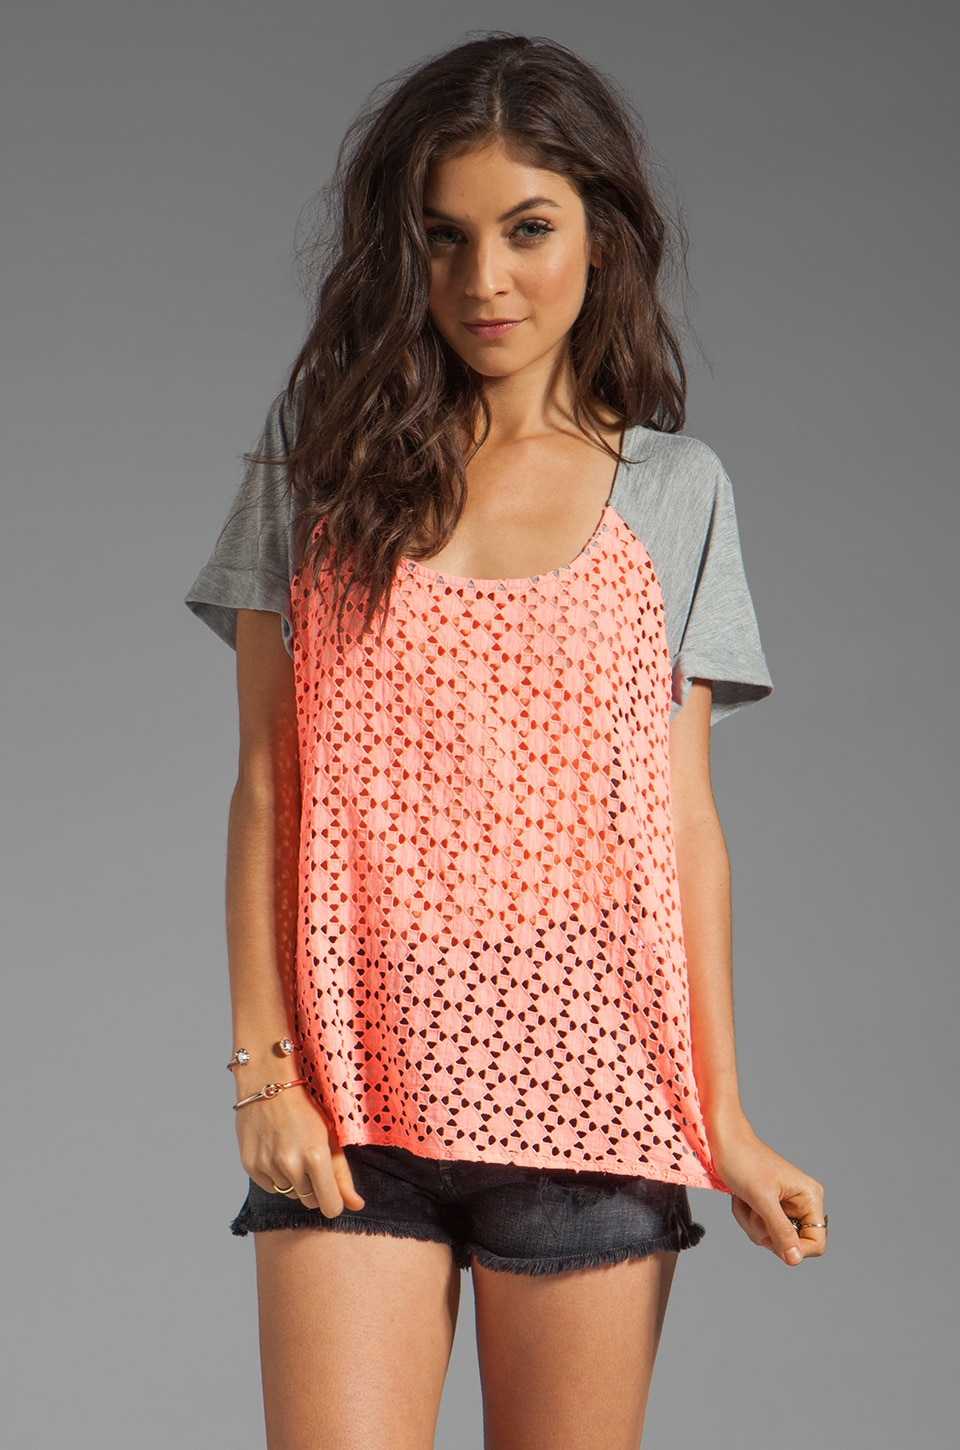 SAM&LAVI Nash Top en Corail Clair